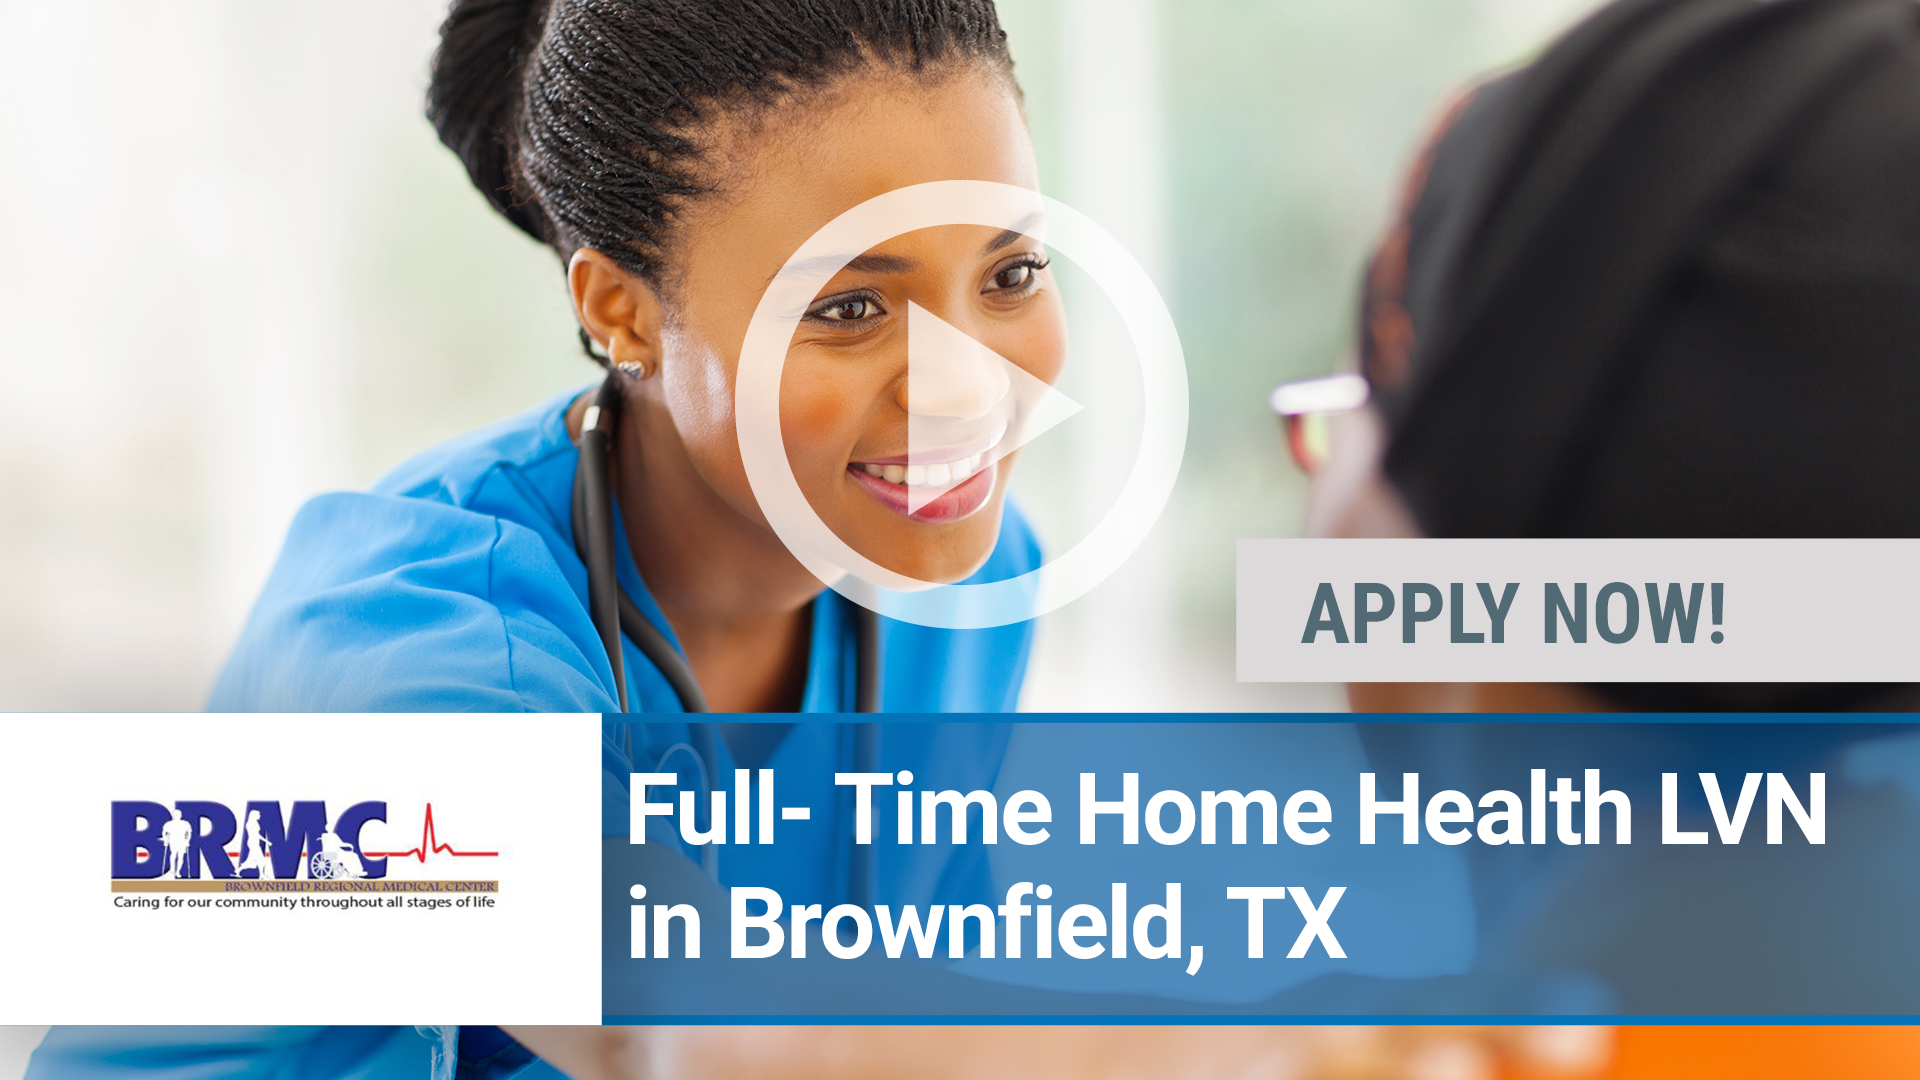 Watch our careers video for available job opening Full- Time Home Health LVN in Brownfield, TX in Amarillo, TX